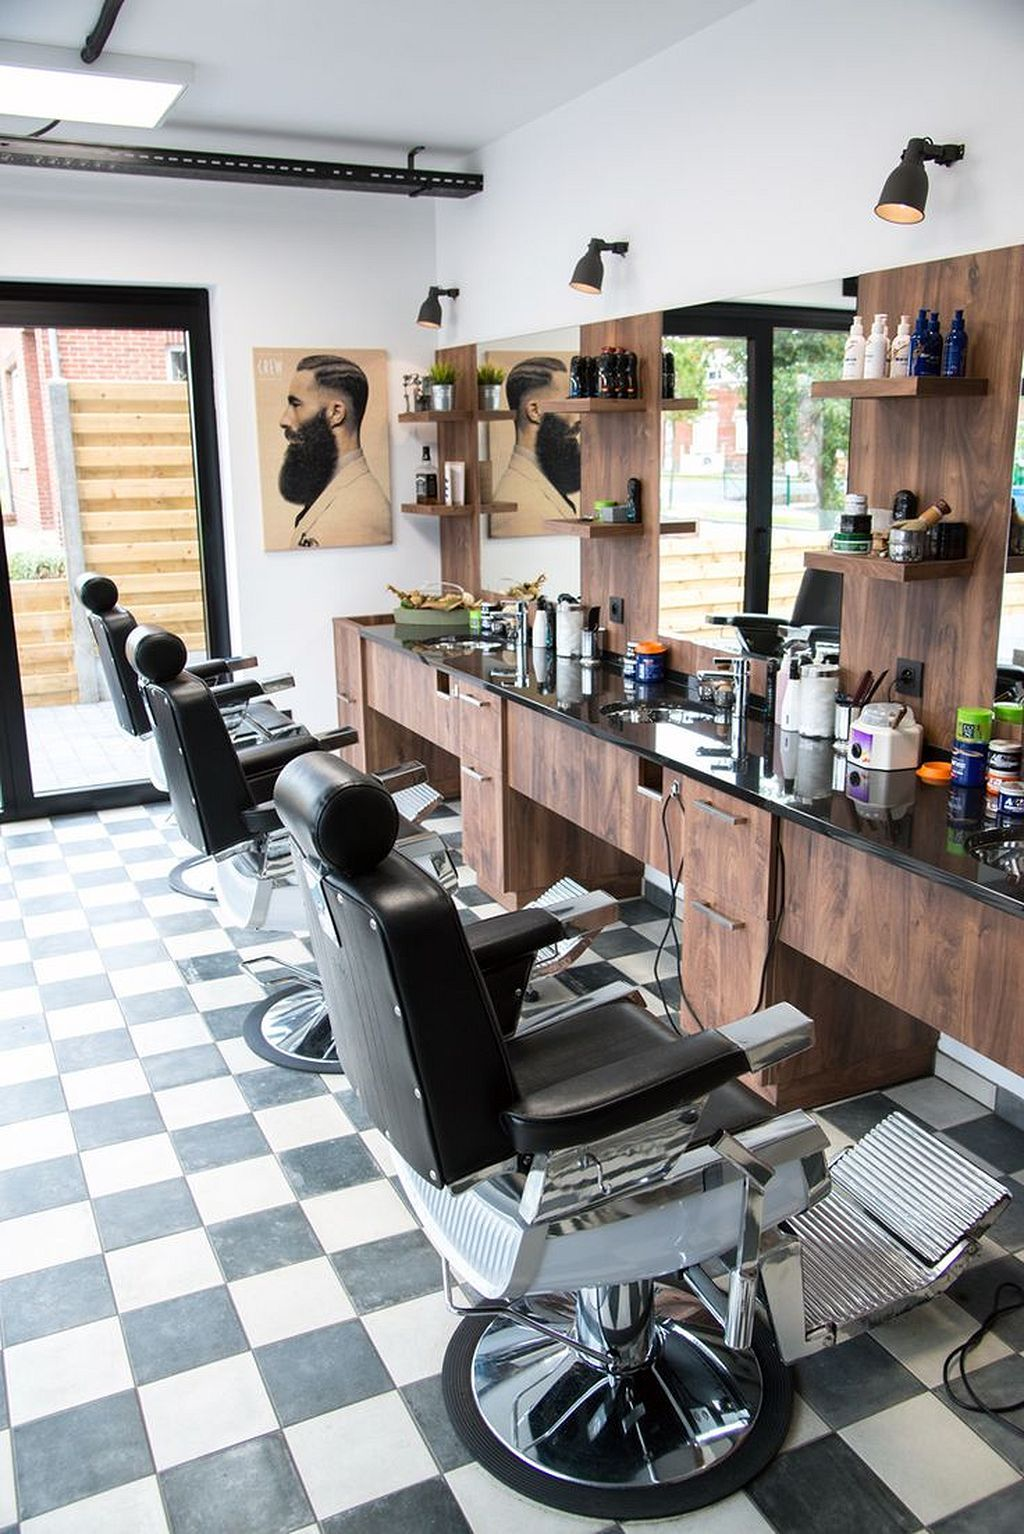 50 Gorgeous Beauty Salon Interior Design Ideas | Barberia, Barbería ...